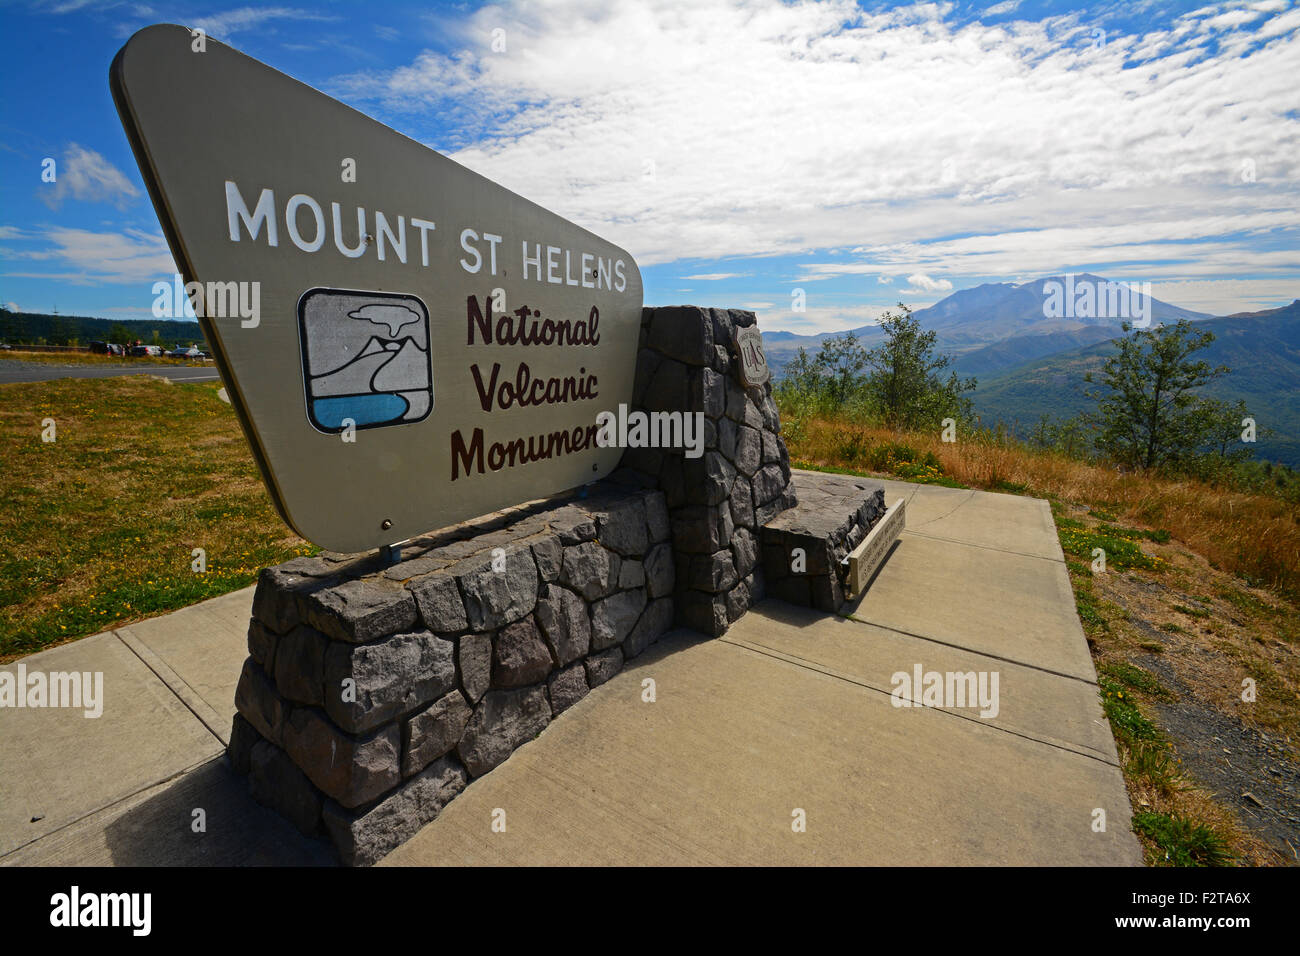 Mount St Helens  National Volcanic Monument sign - Stock Image